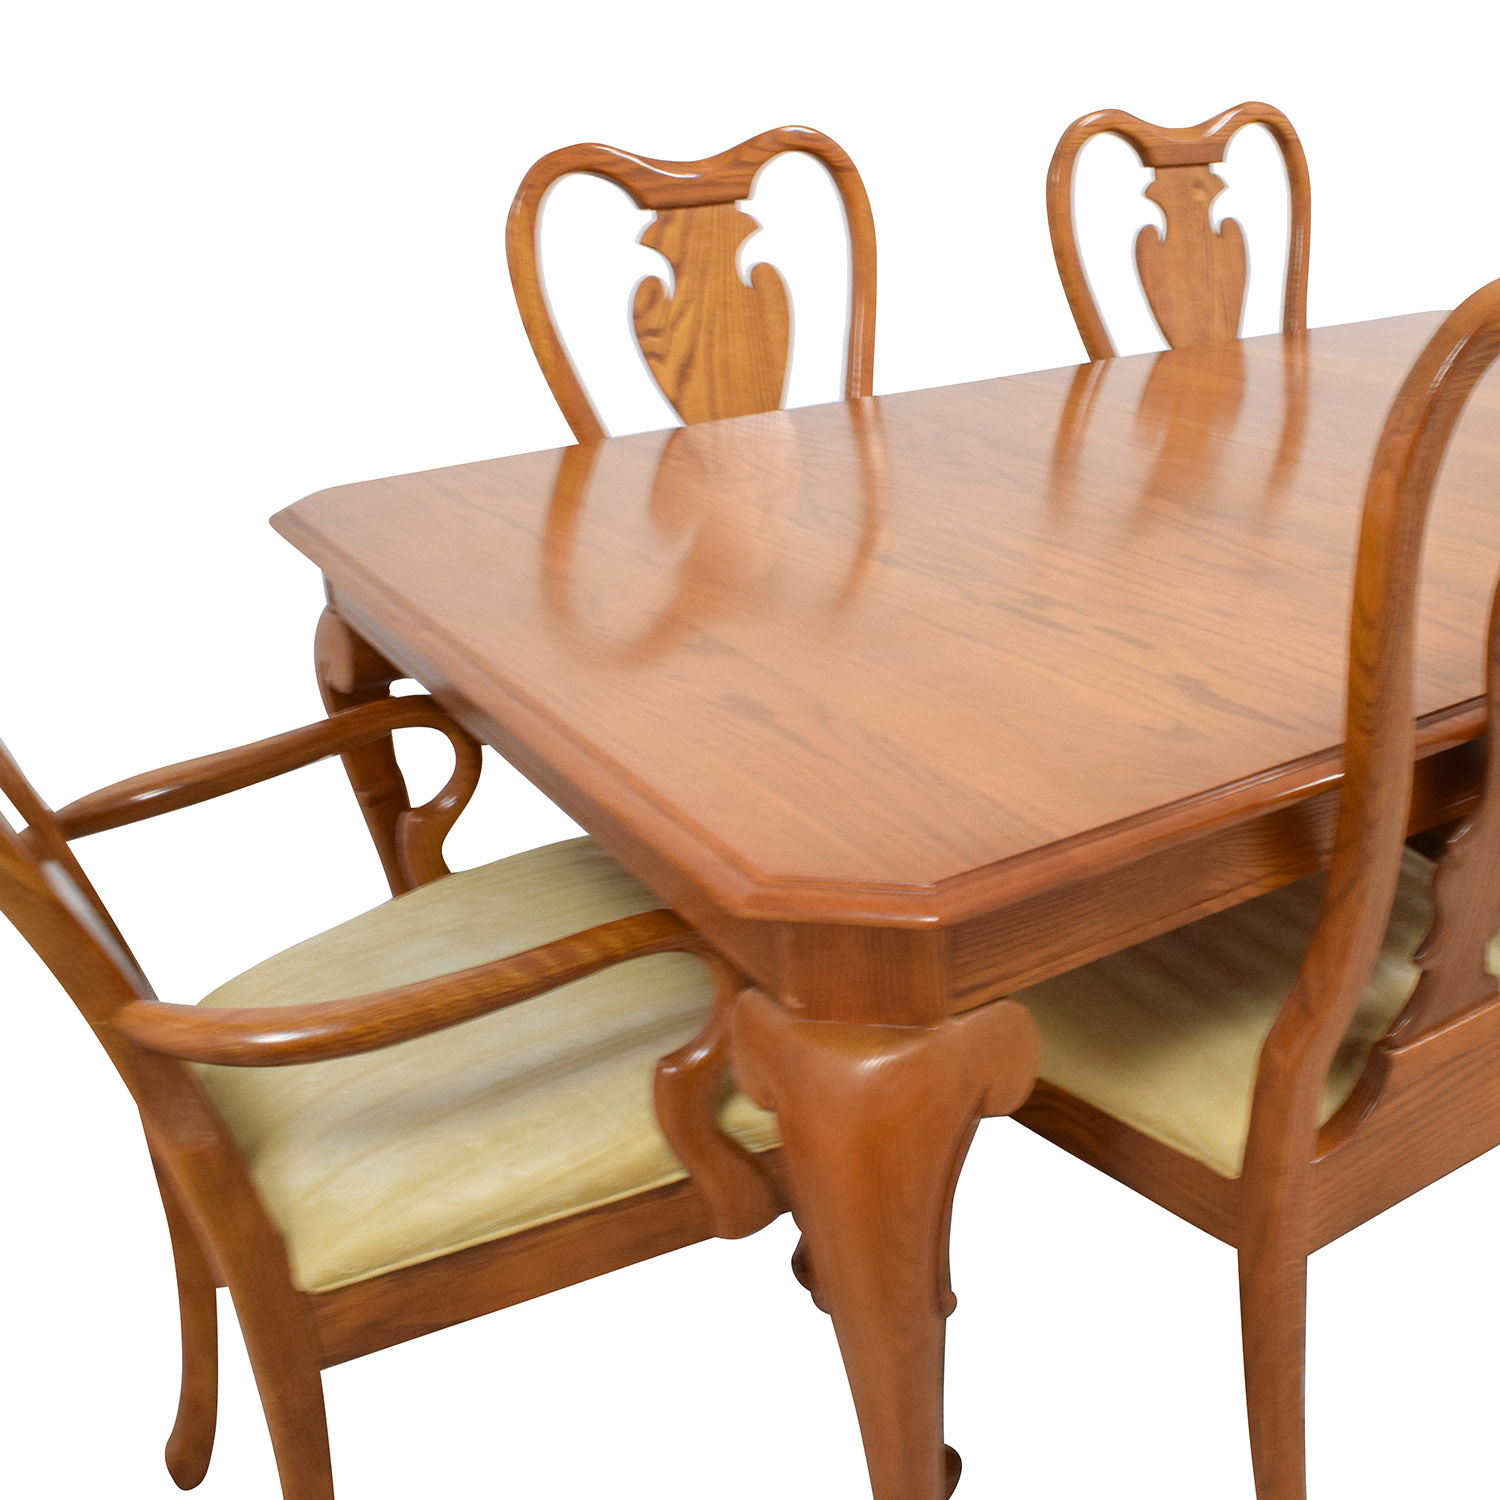 Classic Six-Piece Wooden Dining Set